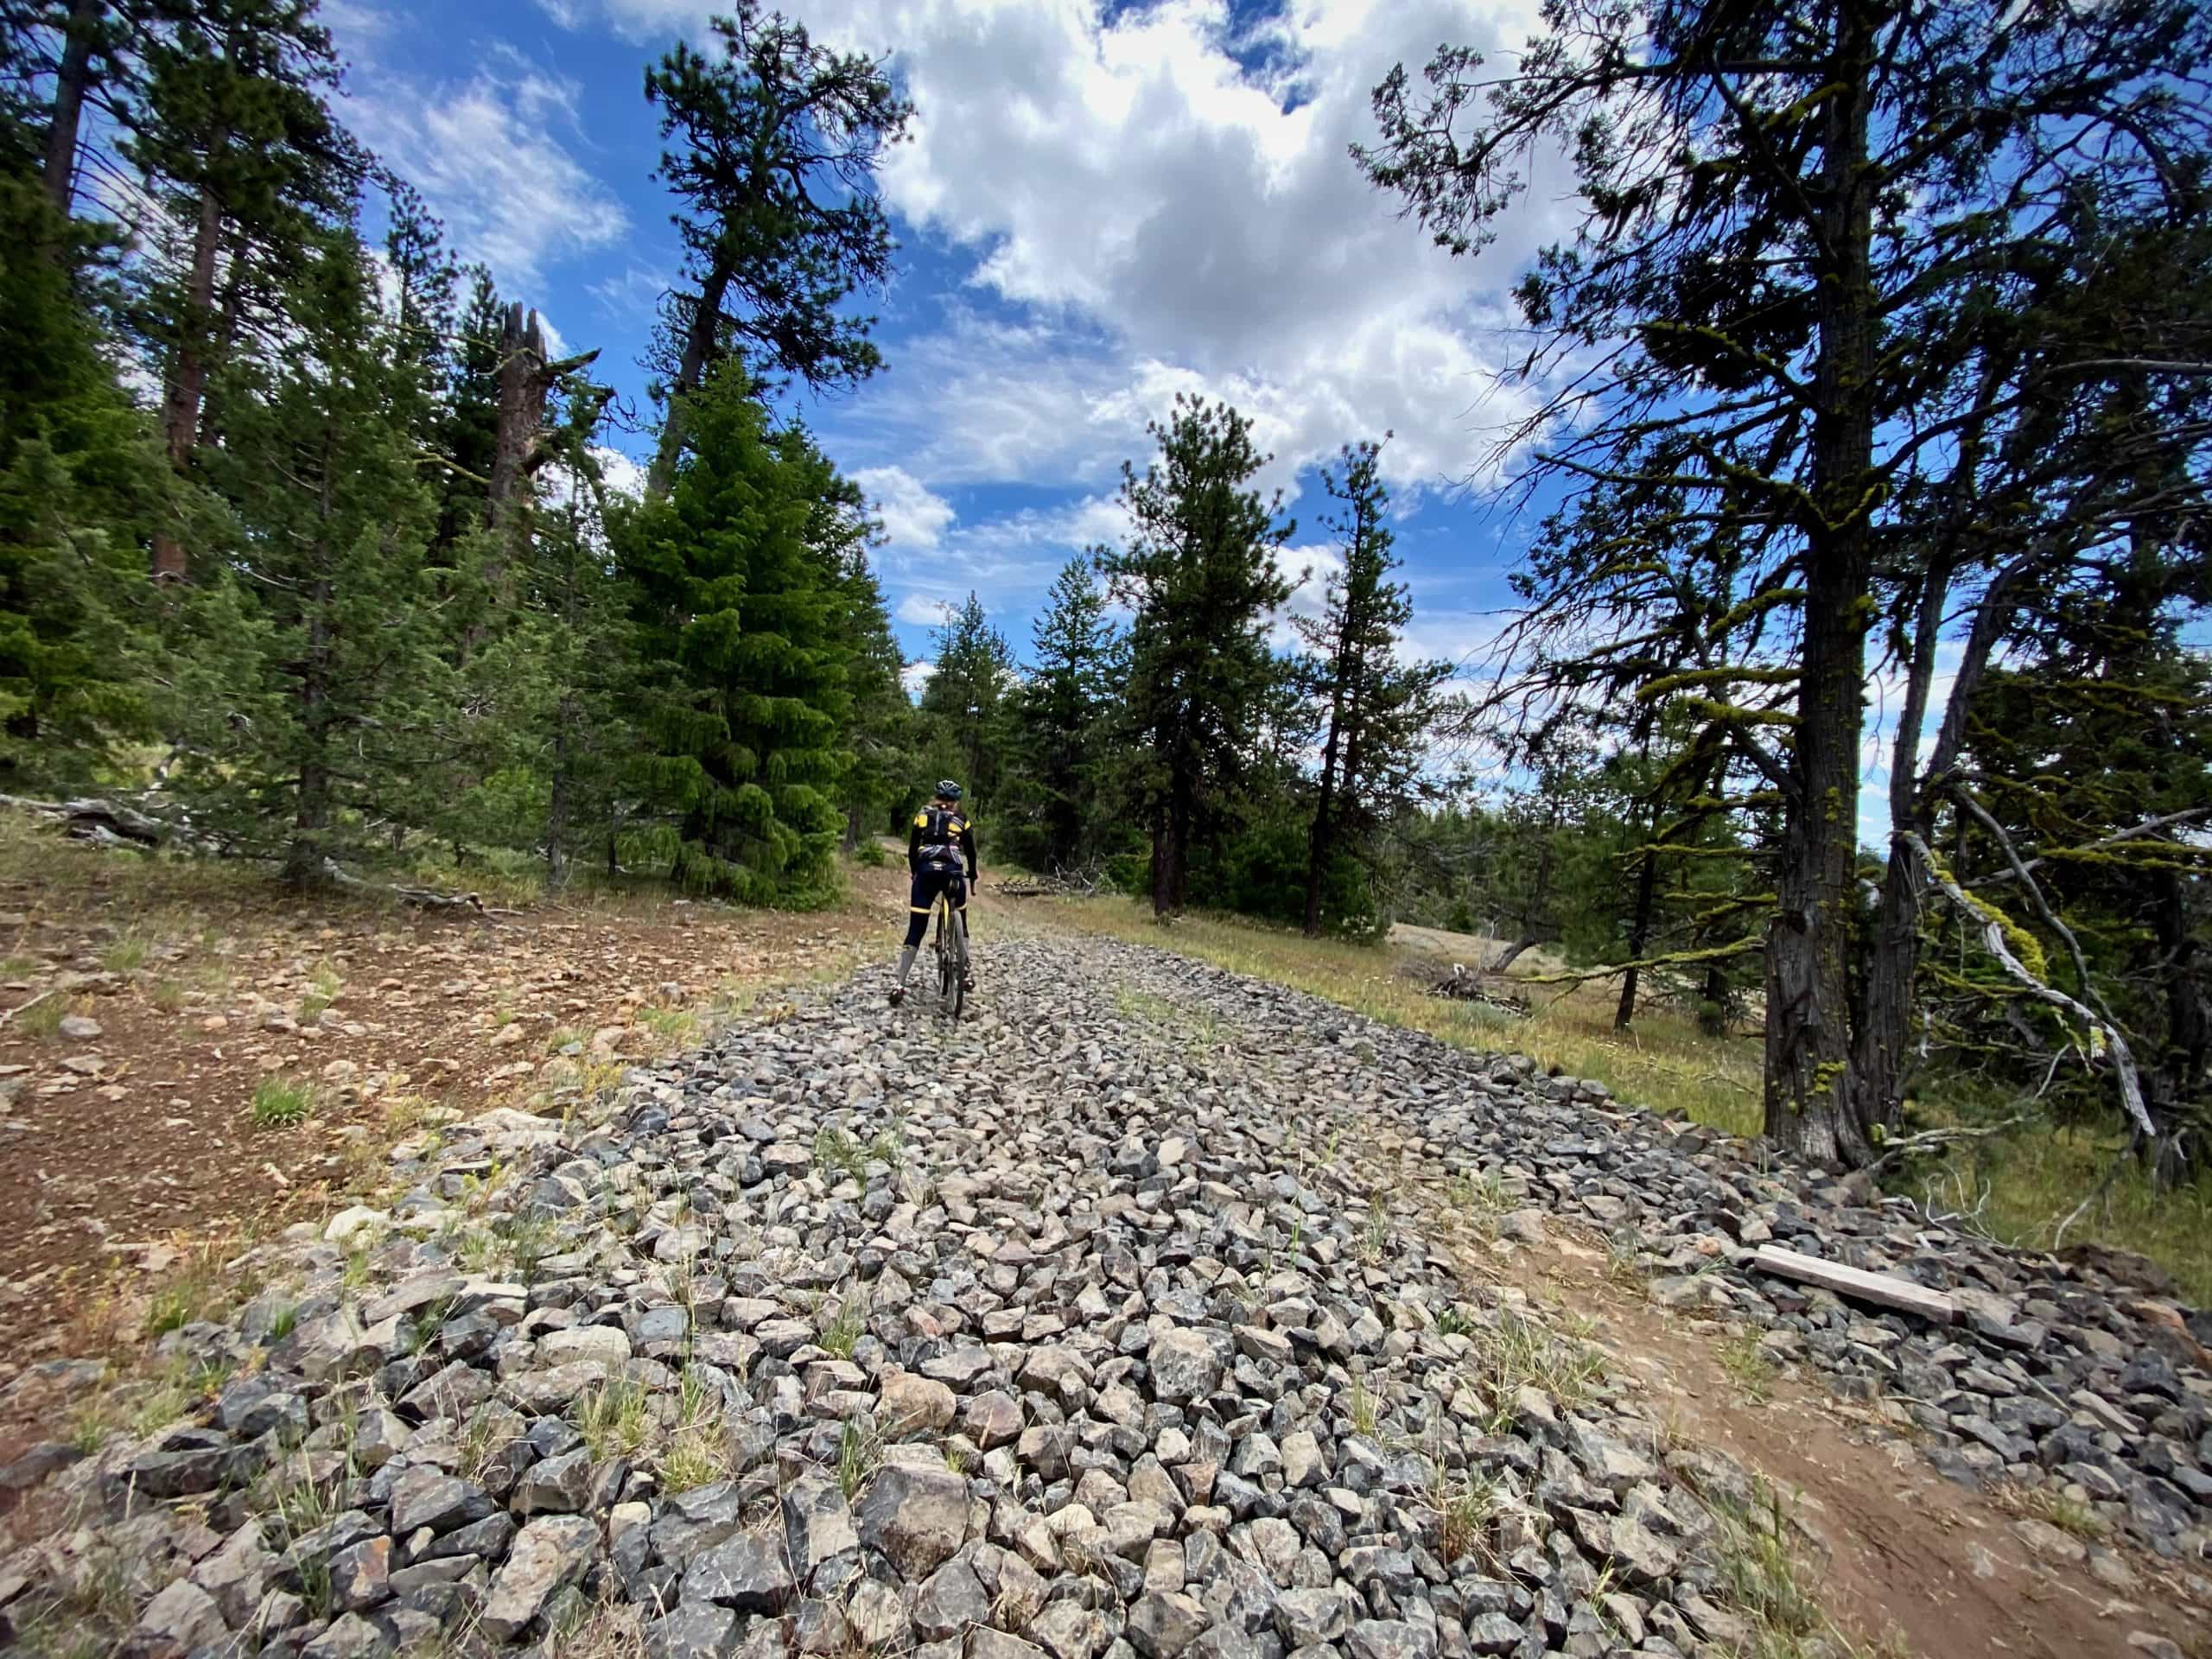 Gravel Girl riding through a rock field dumped in muddy section of forest service road.